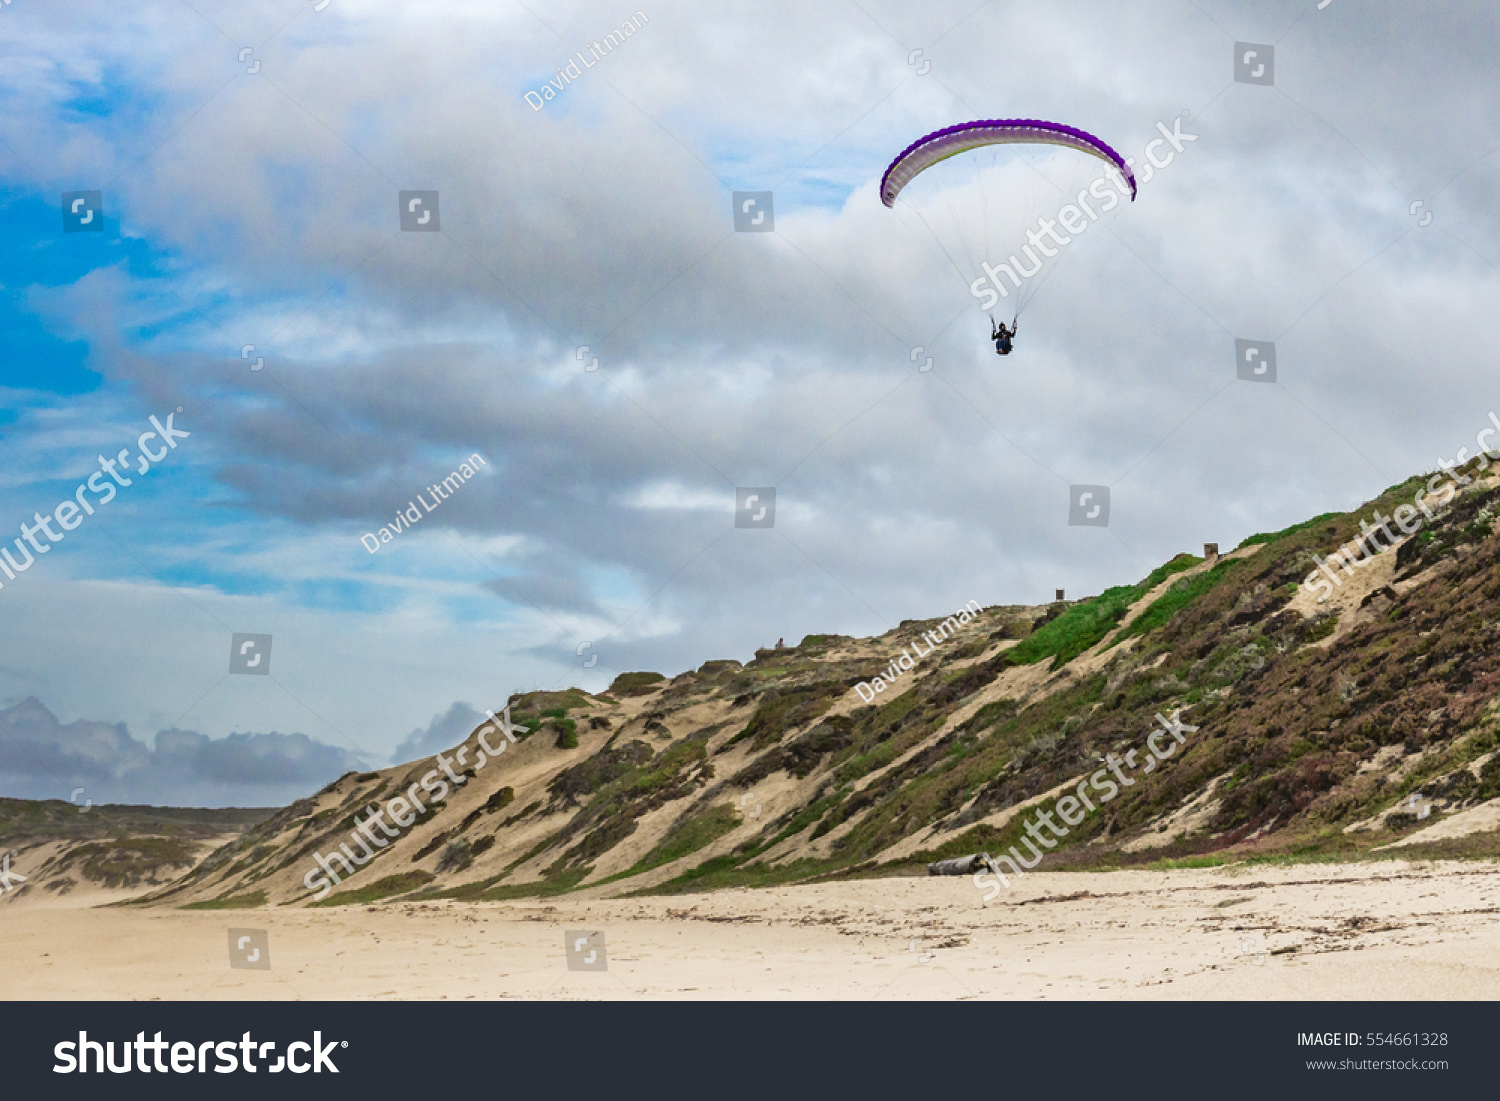 A hang glider/paraglider flies over coastal sand dunes along the Pacific Coast of central California in Sand City near Marina, along the Monterey Bay.